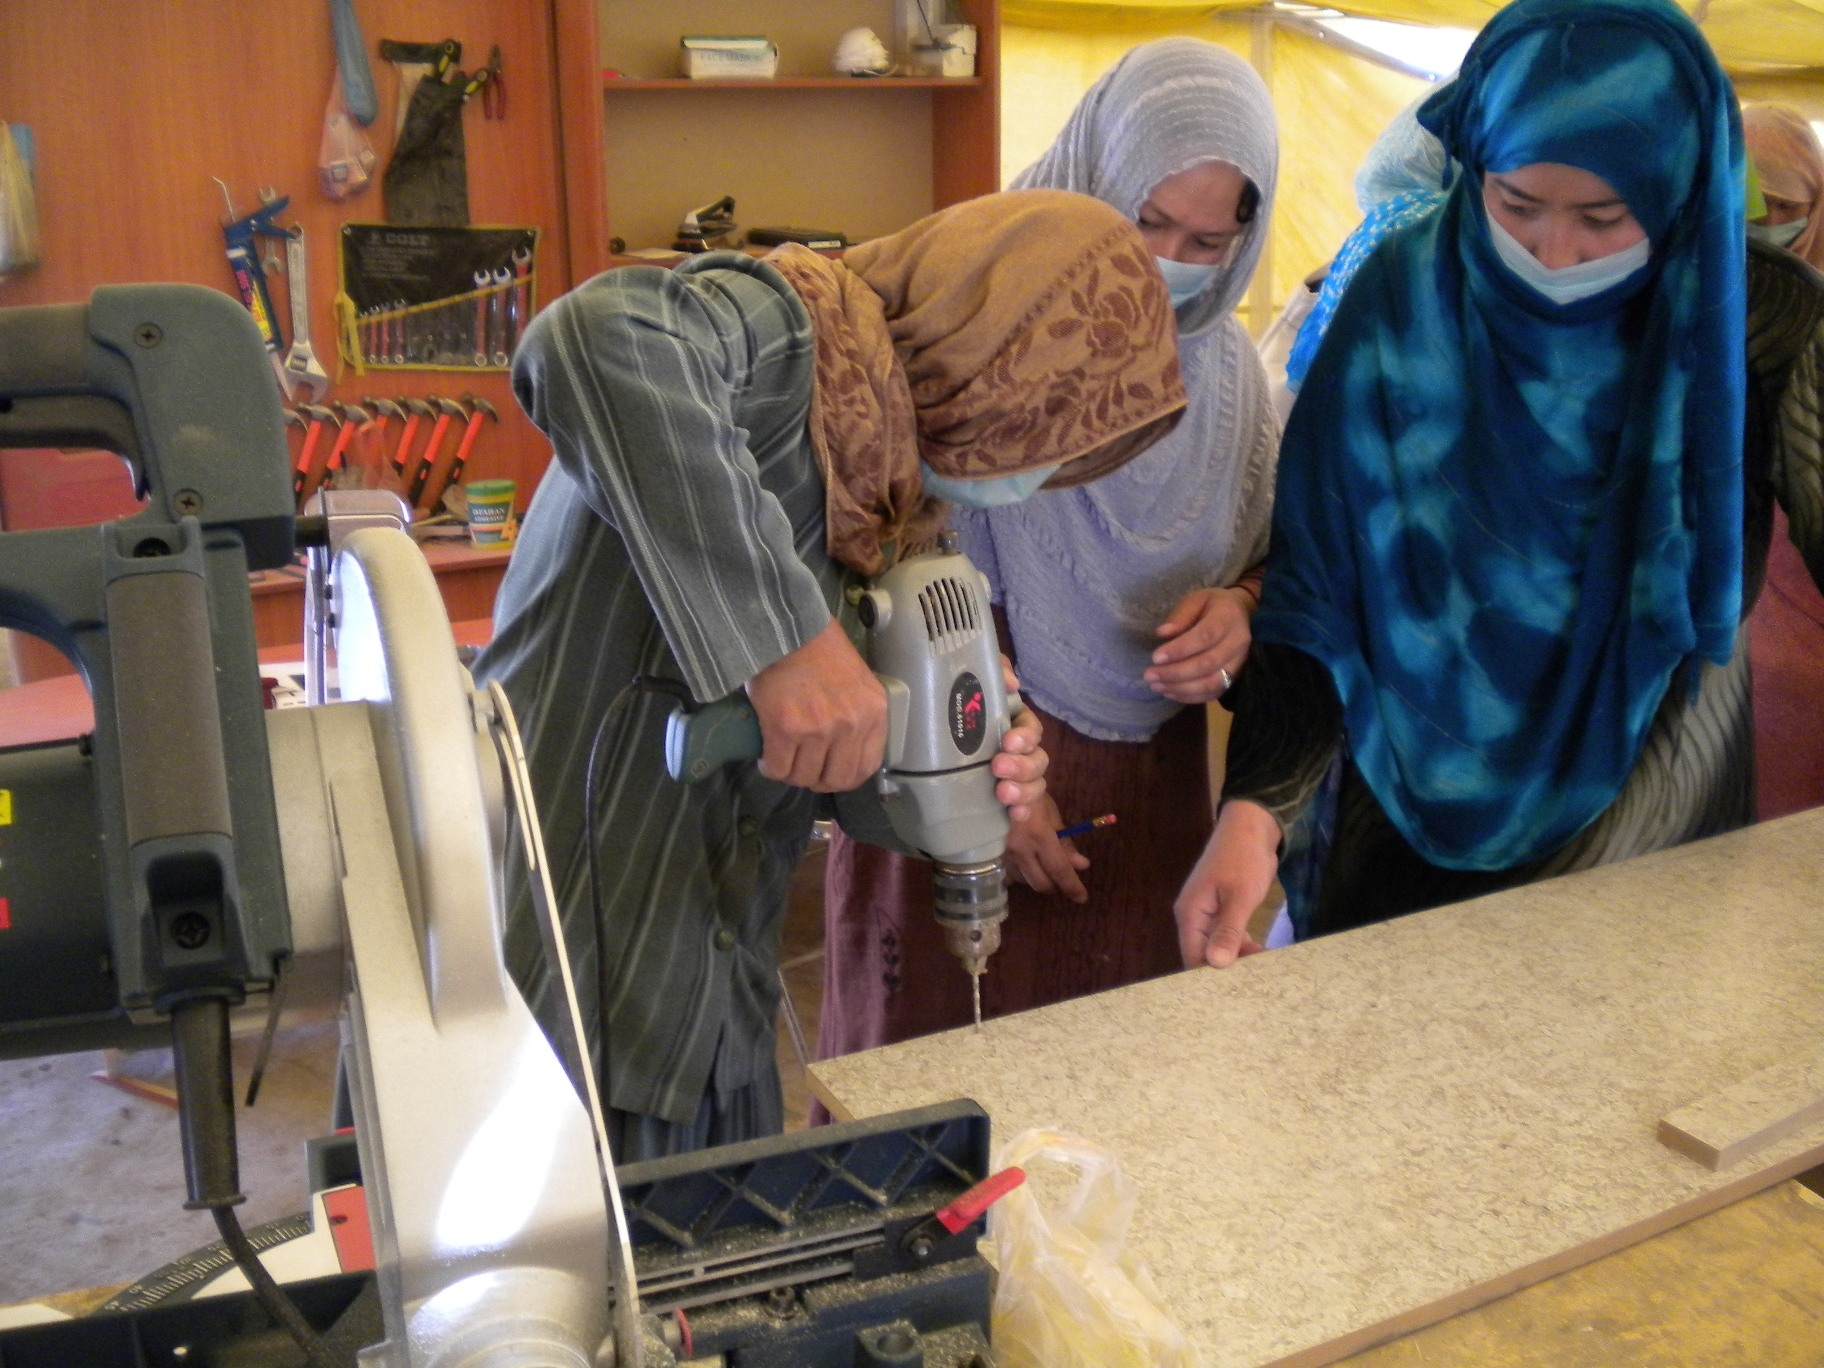 Women in tradition clothing in Afghanistan learning carpentry skills